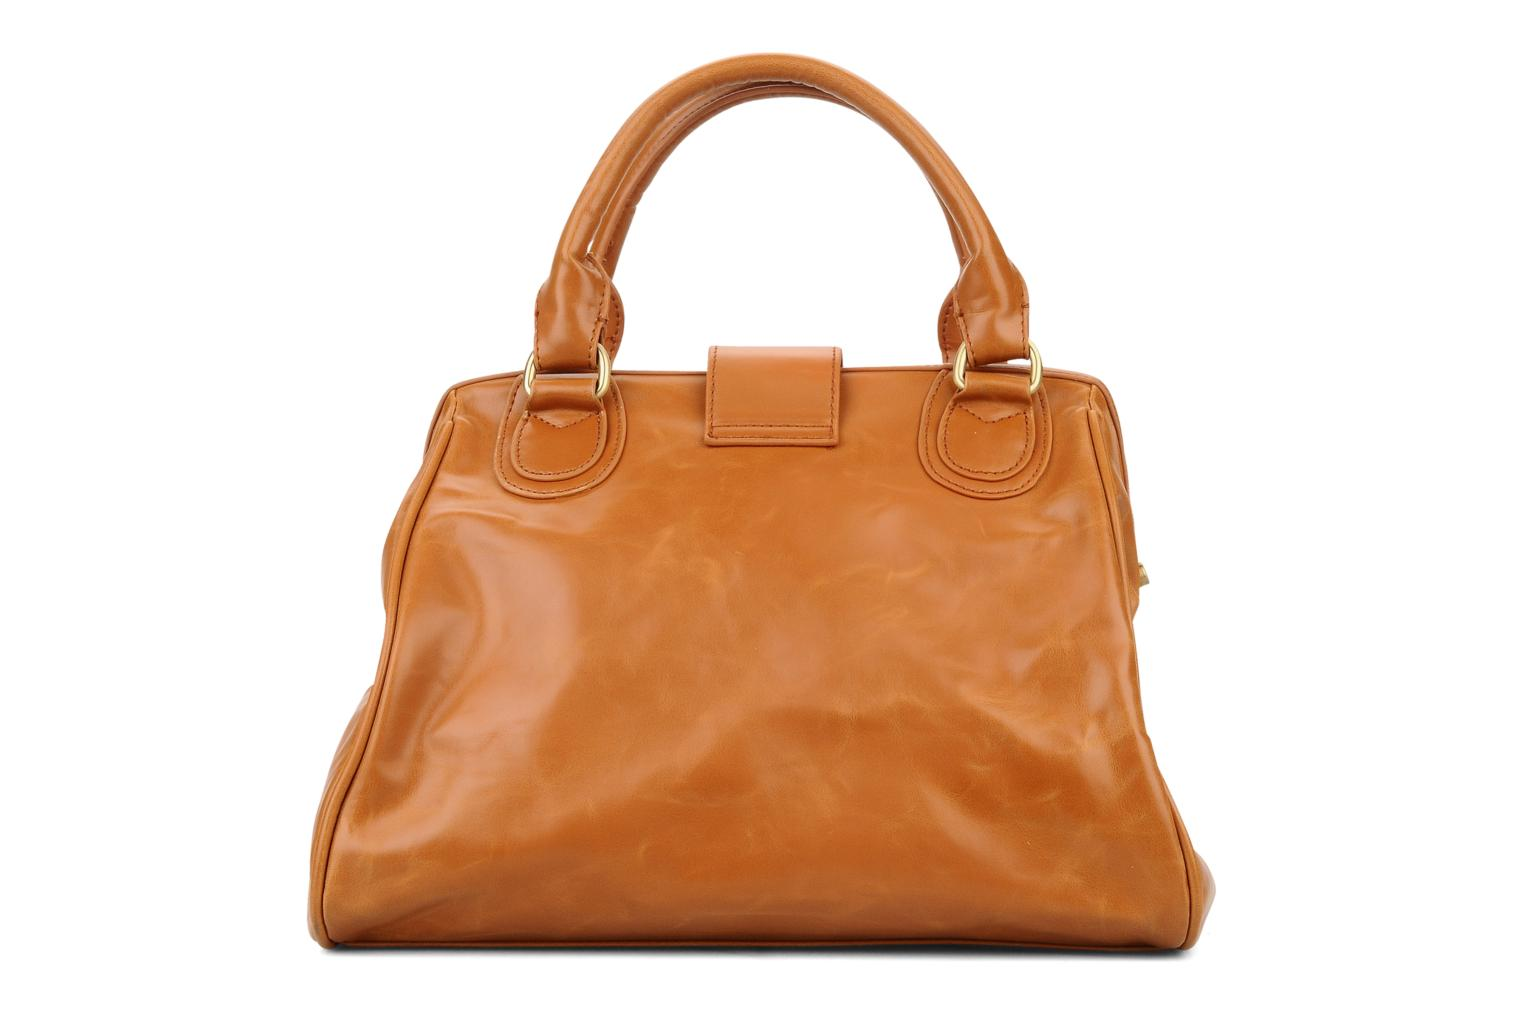 Borse Friis & company Garbo doctor bag Beige immagine frontale